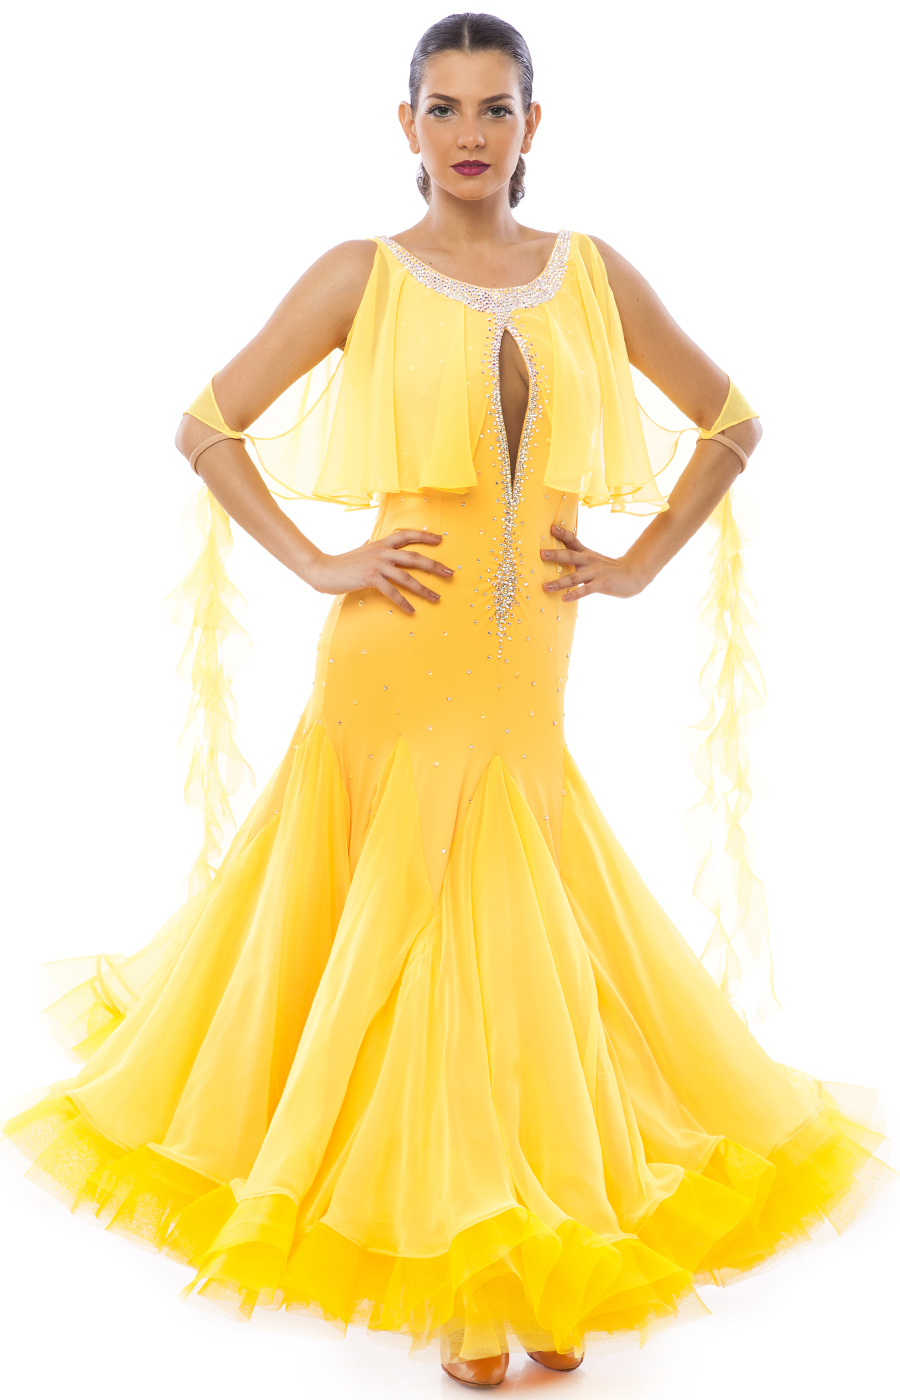 Women Yellow Standard Gown Ballroom Dancing